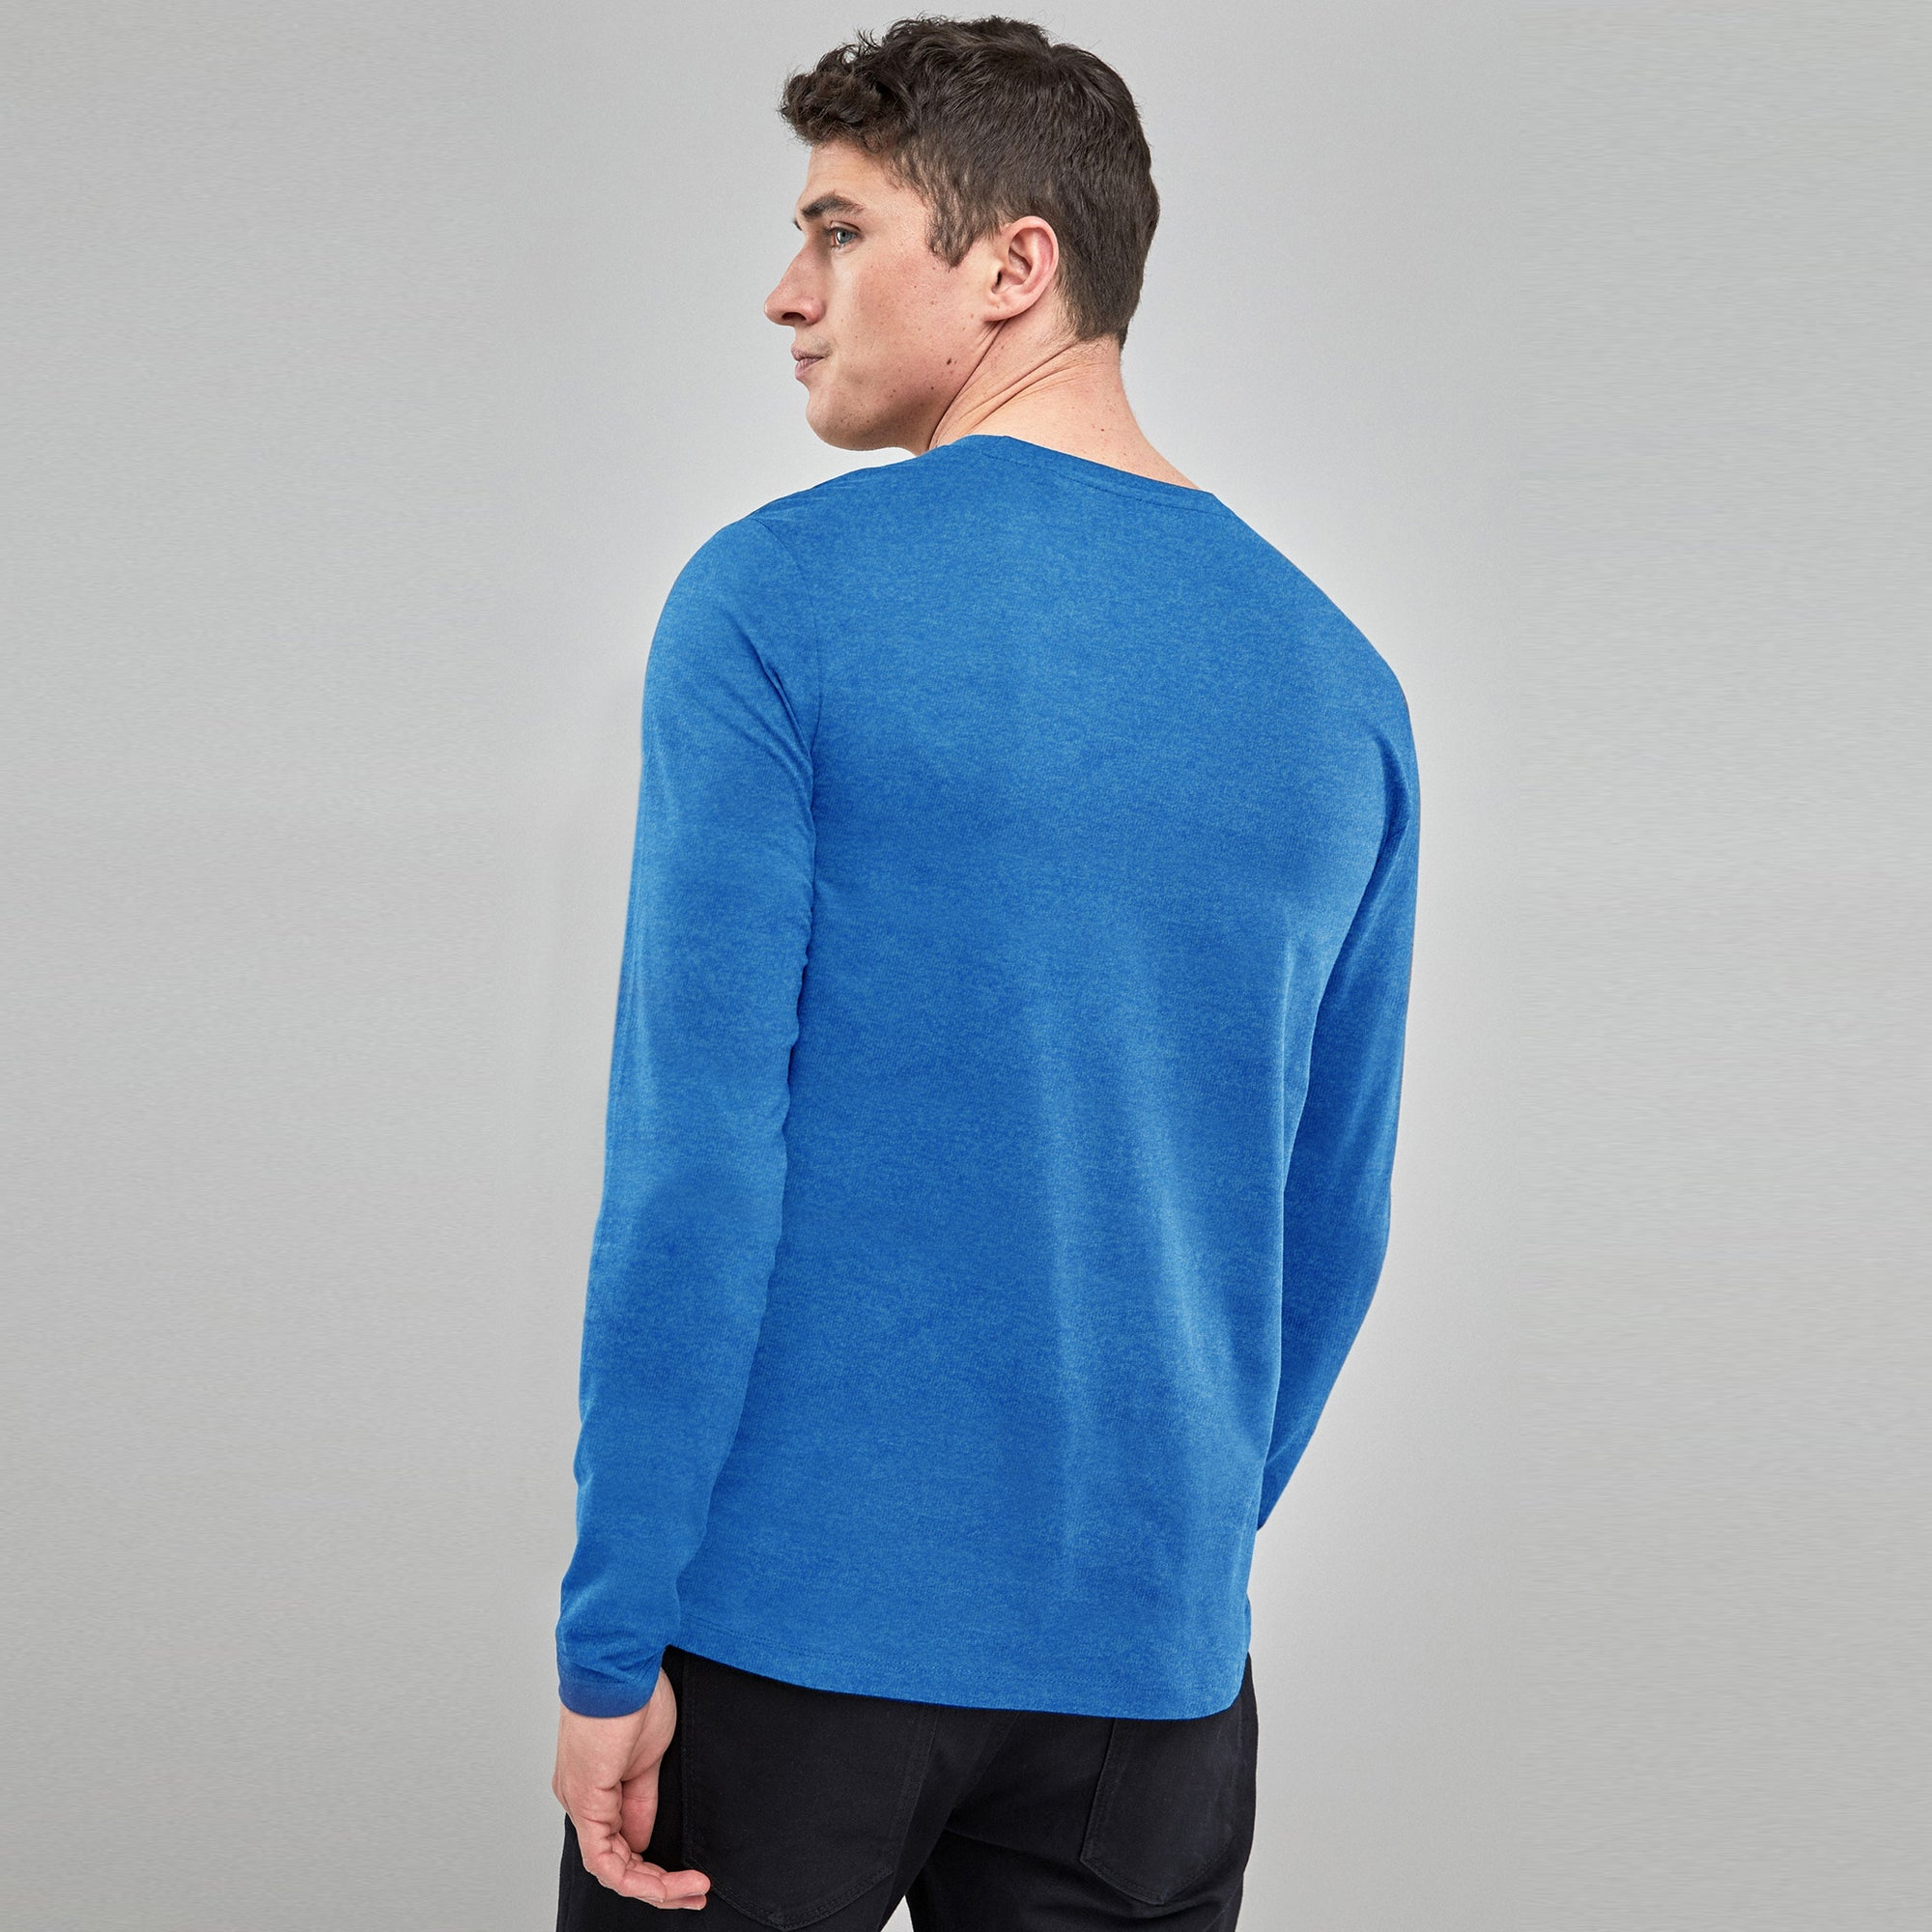 d9351a50 Beverly Hills Polo Club Single Jersey Long Sleeve Tee Shirt For Men-BE8177